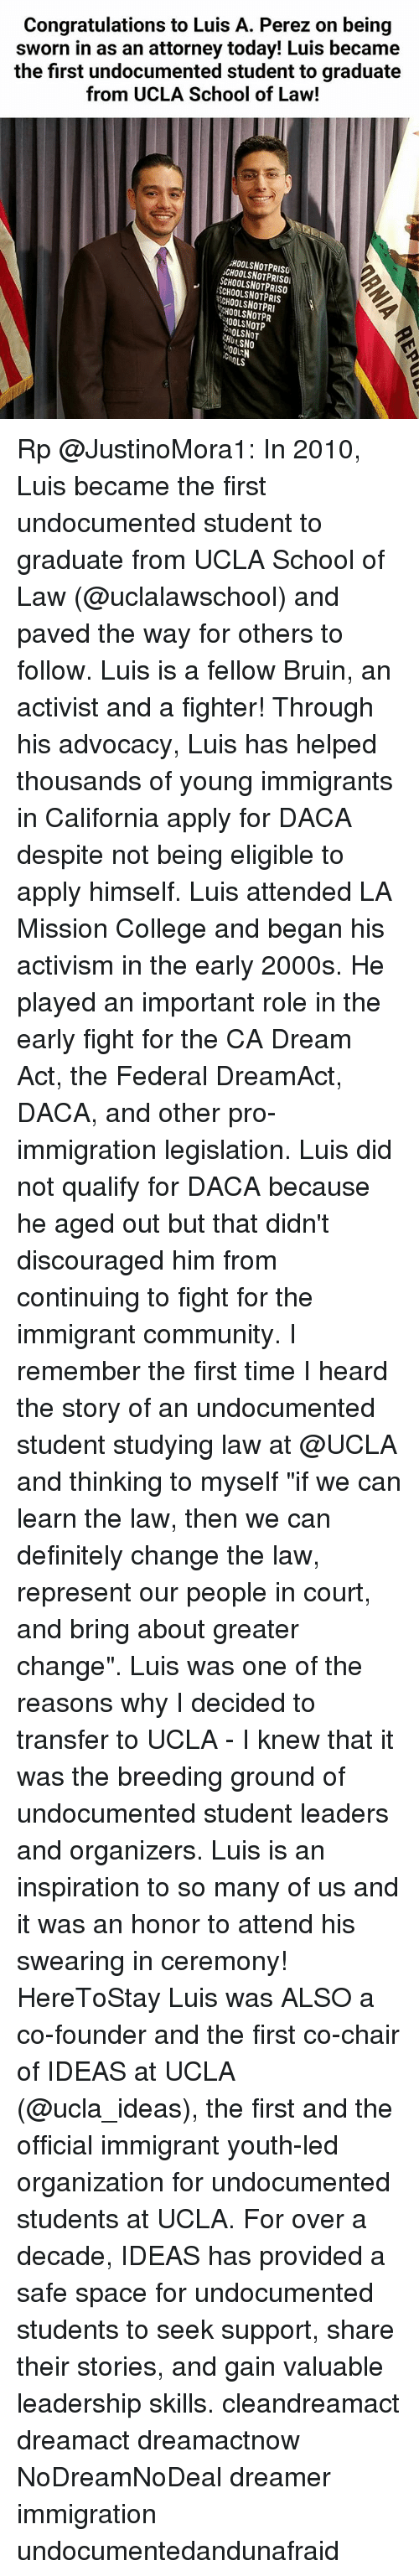 """College, Community, and Definitely: Congratulations to Luis A. Perez on being  sworn in as an attorney today! Luis became  the first undocumented student to graduate  from UCLA School of Law!  HOOLSNOTPRISO  CHOOLSNOTPRISO  SCHOOLSNOTPRISO  SCHOOLSNOTPRIS  SCHOOLSNOTPRI  CHOOLSNOTPR  HOOLSNOTP  OLSNOT  OLN  COLS Rp @JustinoMora1: In 2010, Luis became the first undocumented student to graduate from UCLA School of Law (@uclalawschool) and paved the way for others to follow. Luis is a fellow Bruin, an activist and a fighter! Through his advocacy, Luis has helped thousands of young immigrants in California apply for DACA despite not being eligible to apply himself. Luis attended LA Mission College and began his activism in the early 2000s. He played an important role in the early fight for the CA Dream Act, the Federal DreamAct, DACA, and other pro-immigration legislation. Luis did not qualify for DACA because he aged out but that didn't discouraged him from continuing to fight for the immigrant community. I remember the first time I heard the story of an undocumented student studying law at @UCLA and thinking to myself """"if we can learn the law, then we can definitely change the law, represent our people in court, and bring about greater change"""". Luis was one of the reasons why I decided to transfer to UCLA - I knew that it was the breeding ground of undocumented student leaders and organizers. Luis is an inspiration to so many of us and it was an honor to attend his swearing in ceremony! HereToStay Luis was ALSO a co-founder and the first co-chair of IDEAS at UCLA (@ucla_ideas), the first and the official immigrant youth-led organization for undocumented students at UCLA. For over a decade, IDEAS has provided a safe space for undocumented students to seek support, share their stories, and gain valuable leadership skills. cleandreamact dreamact dreamactnow NoDreamNoDeal dreamer immigration undocumentedandunafraid"""